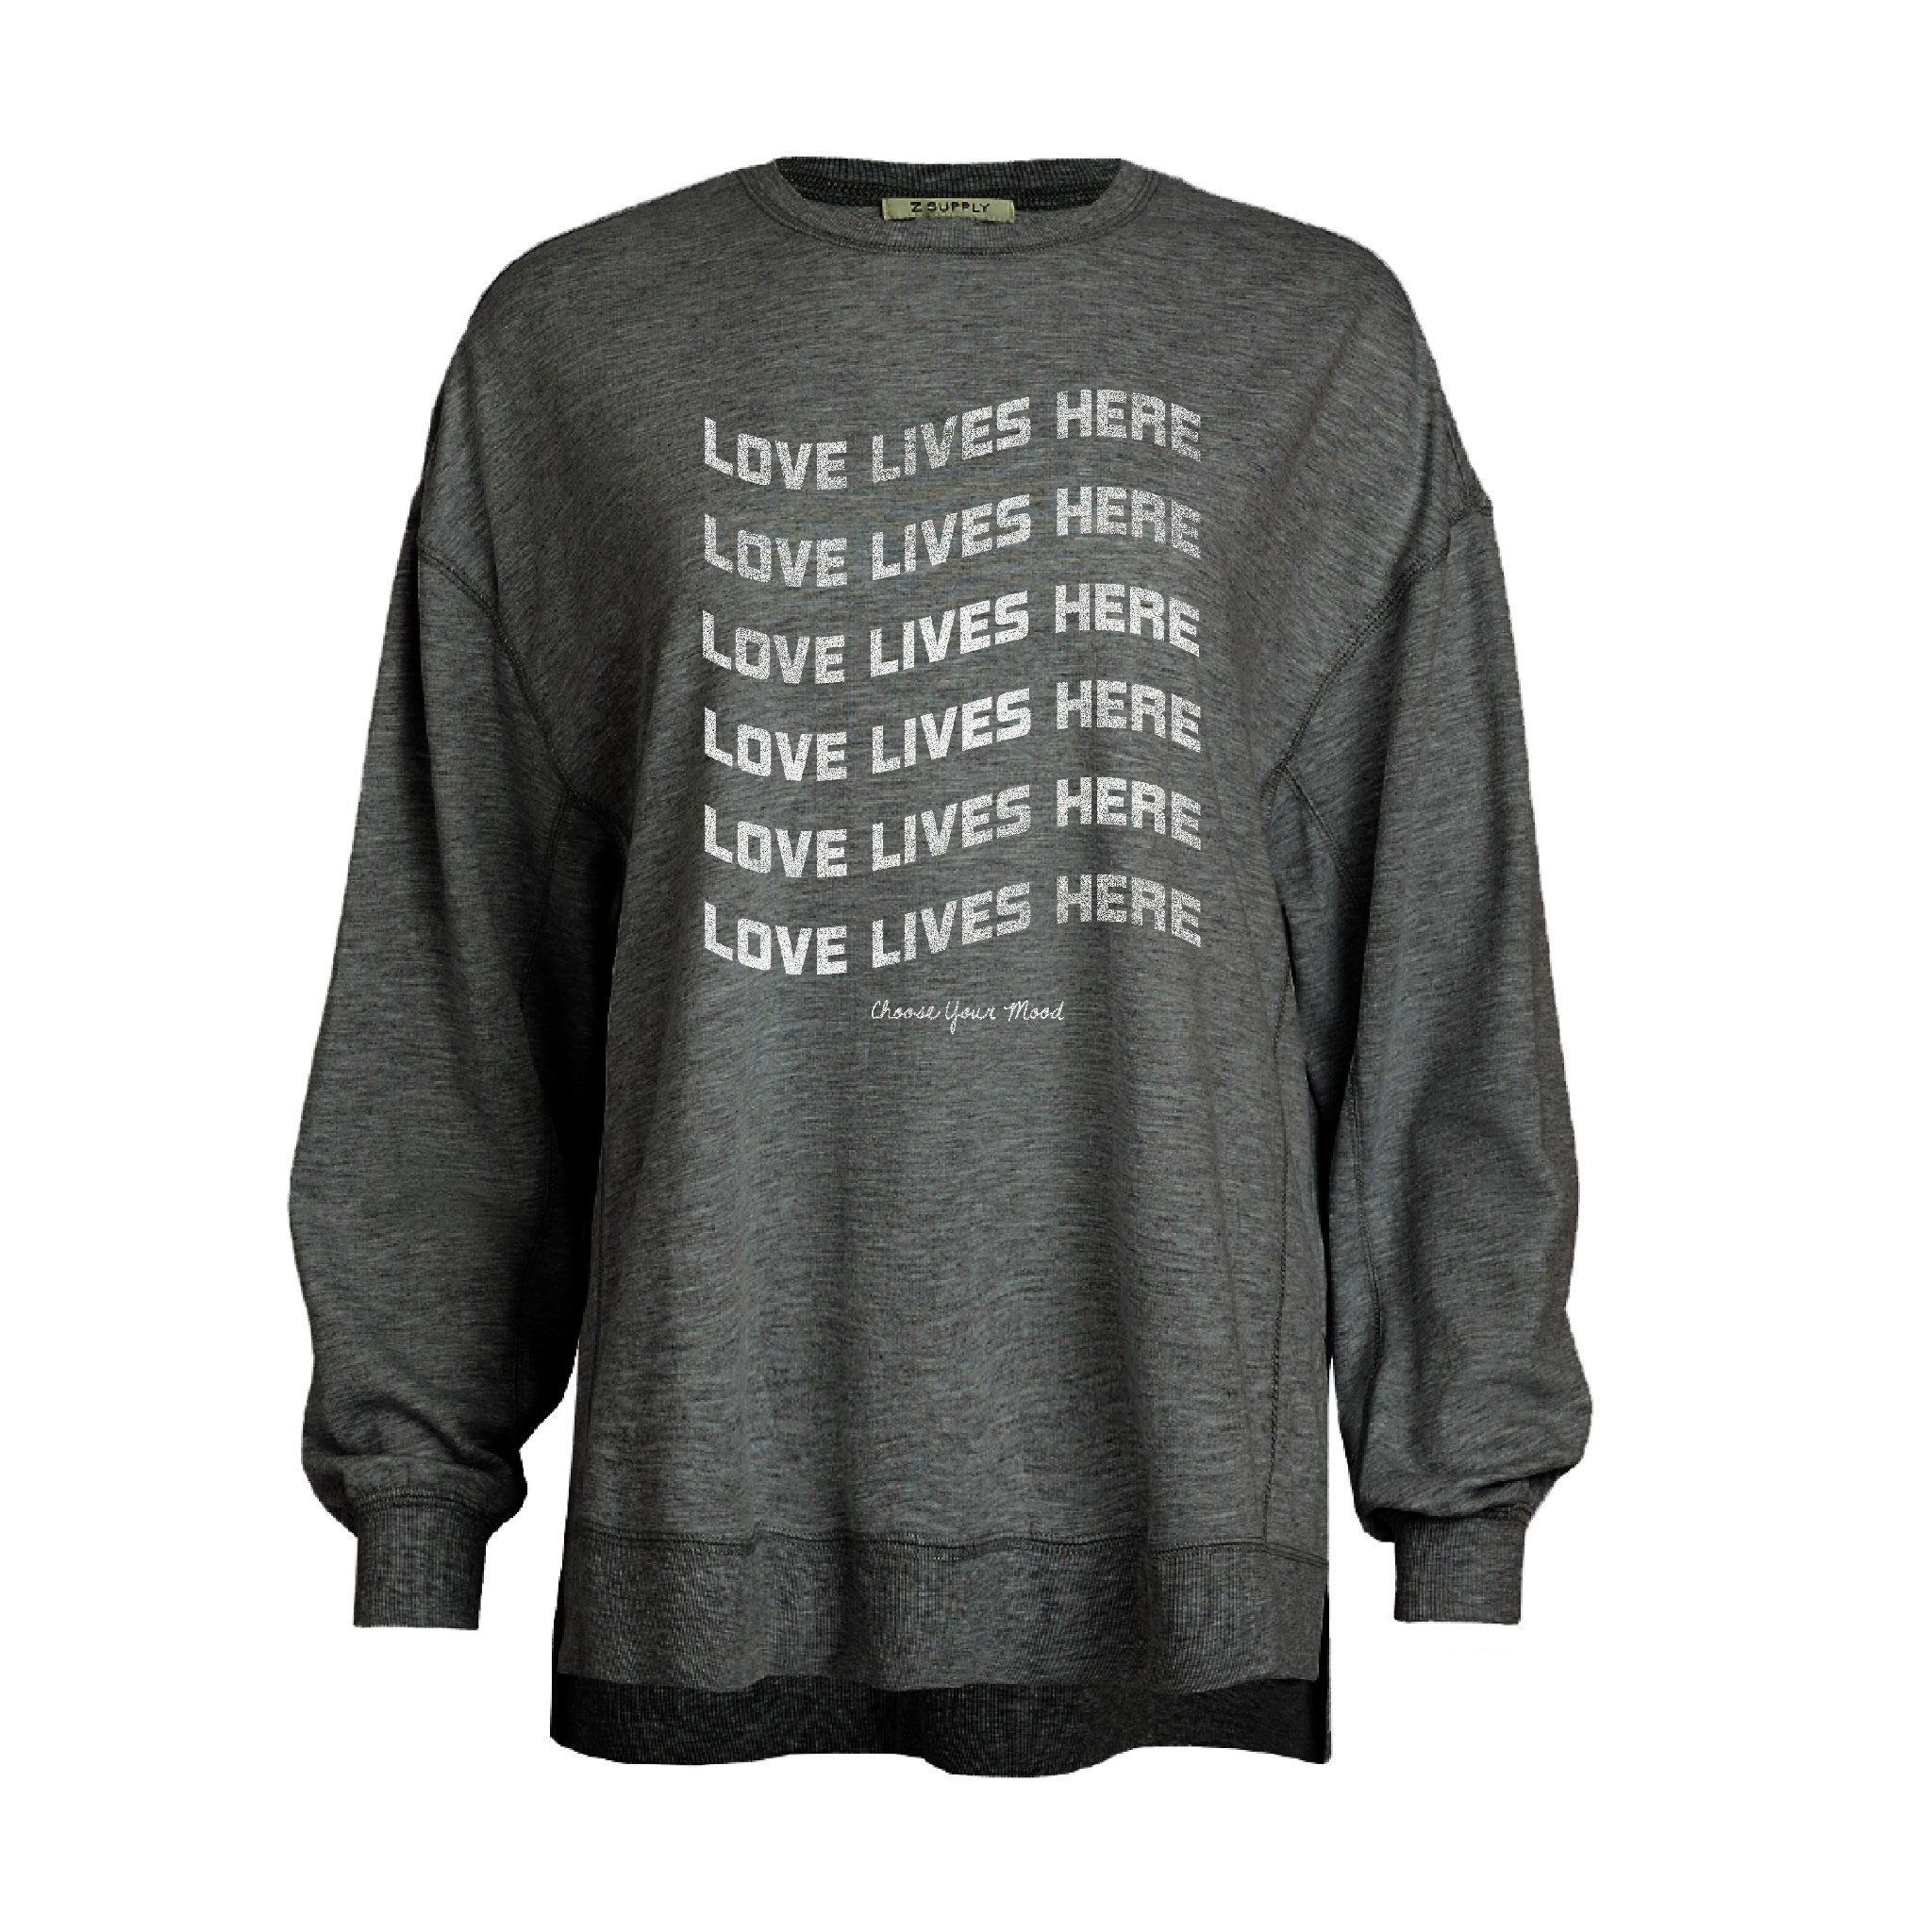 Love Lives Here in Soft Black